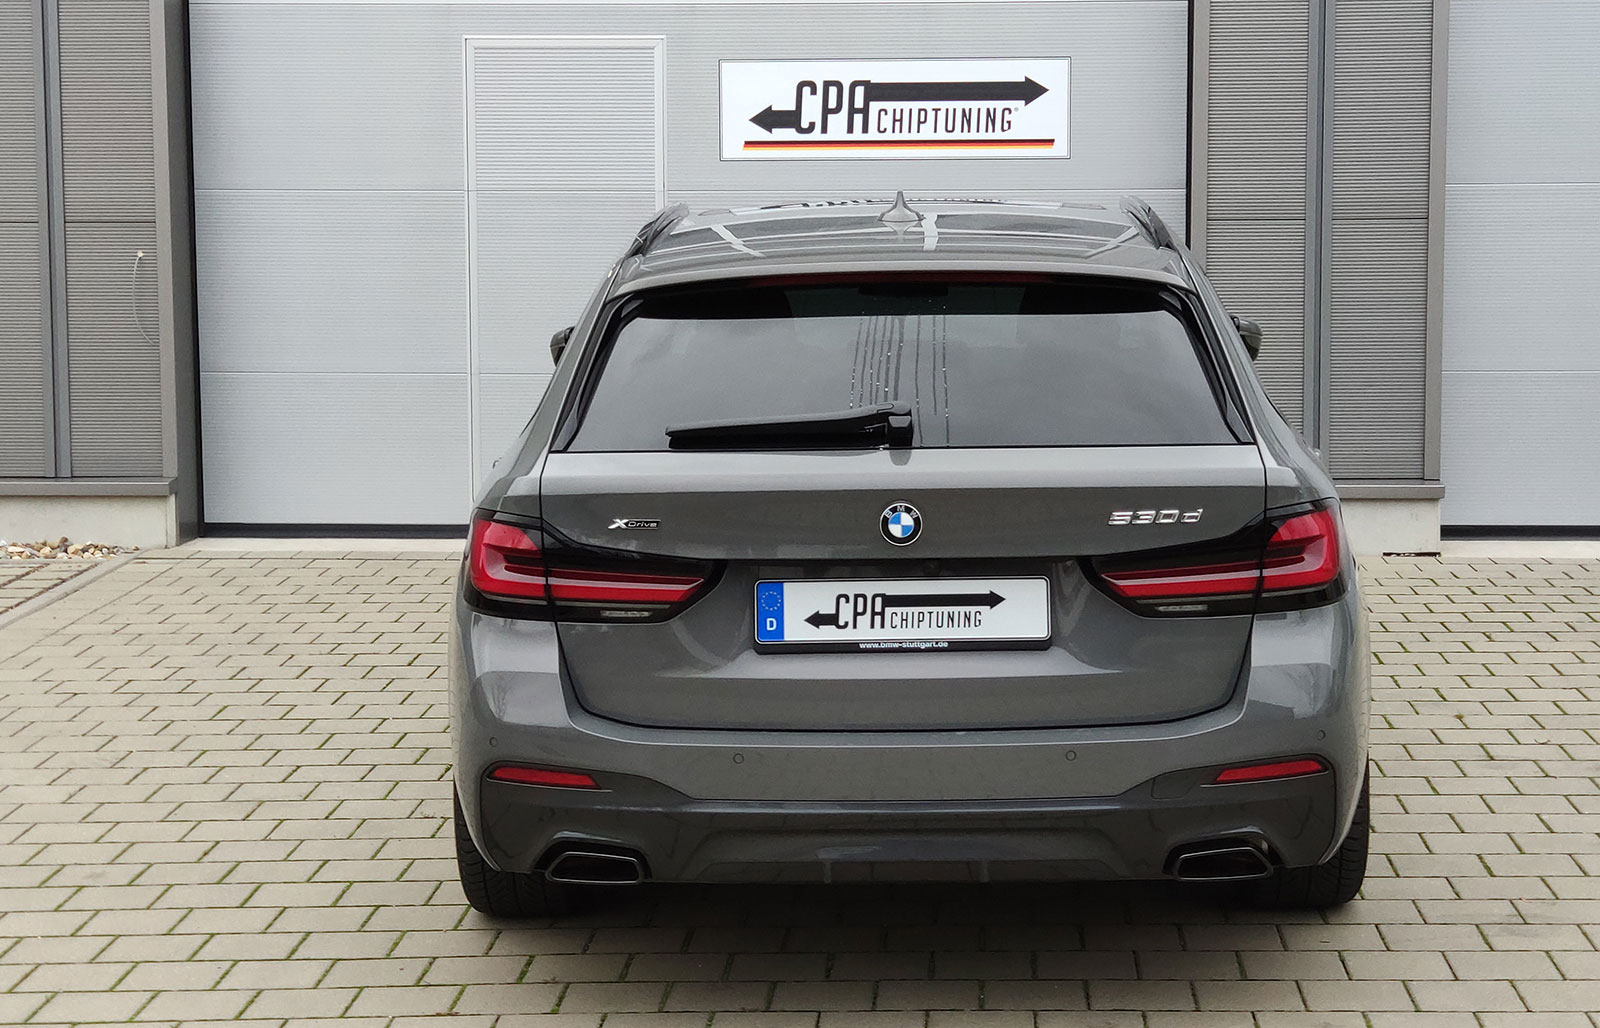 BMW 5er (G30) 530d xDrive chiptuning